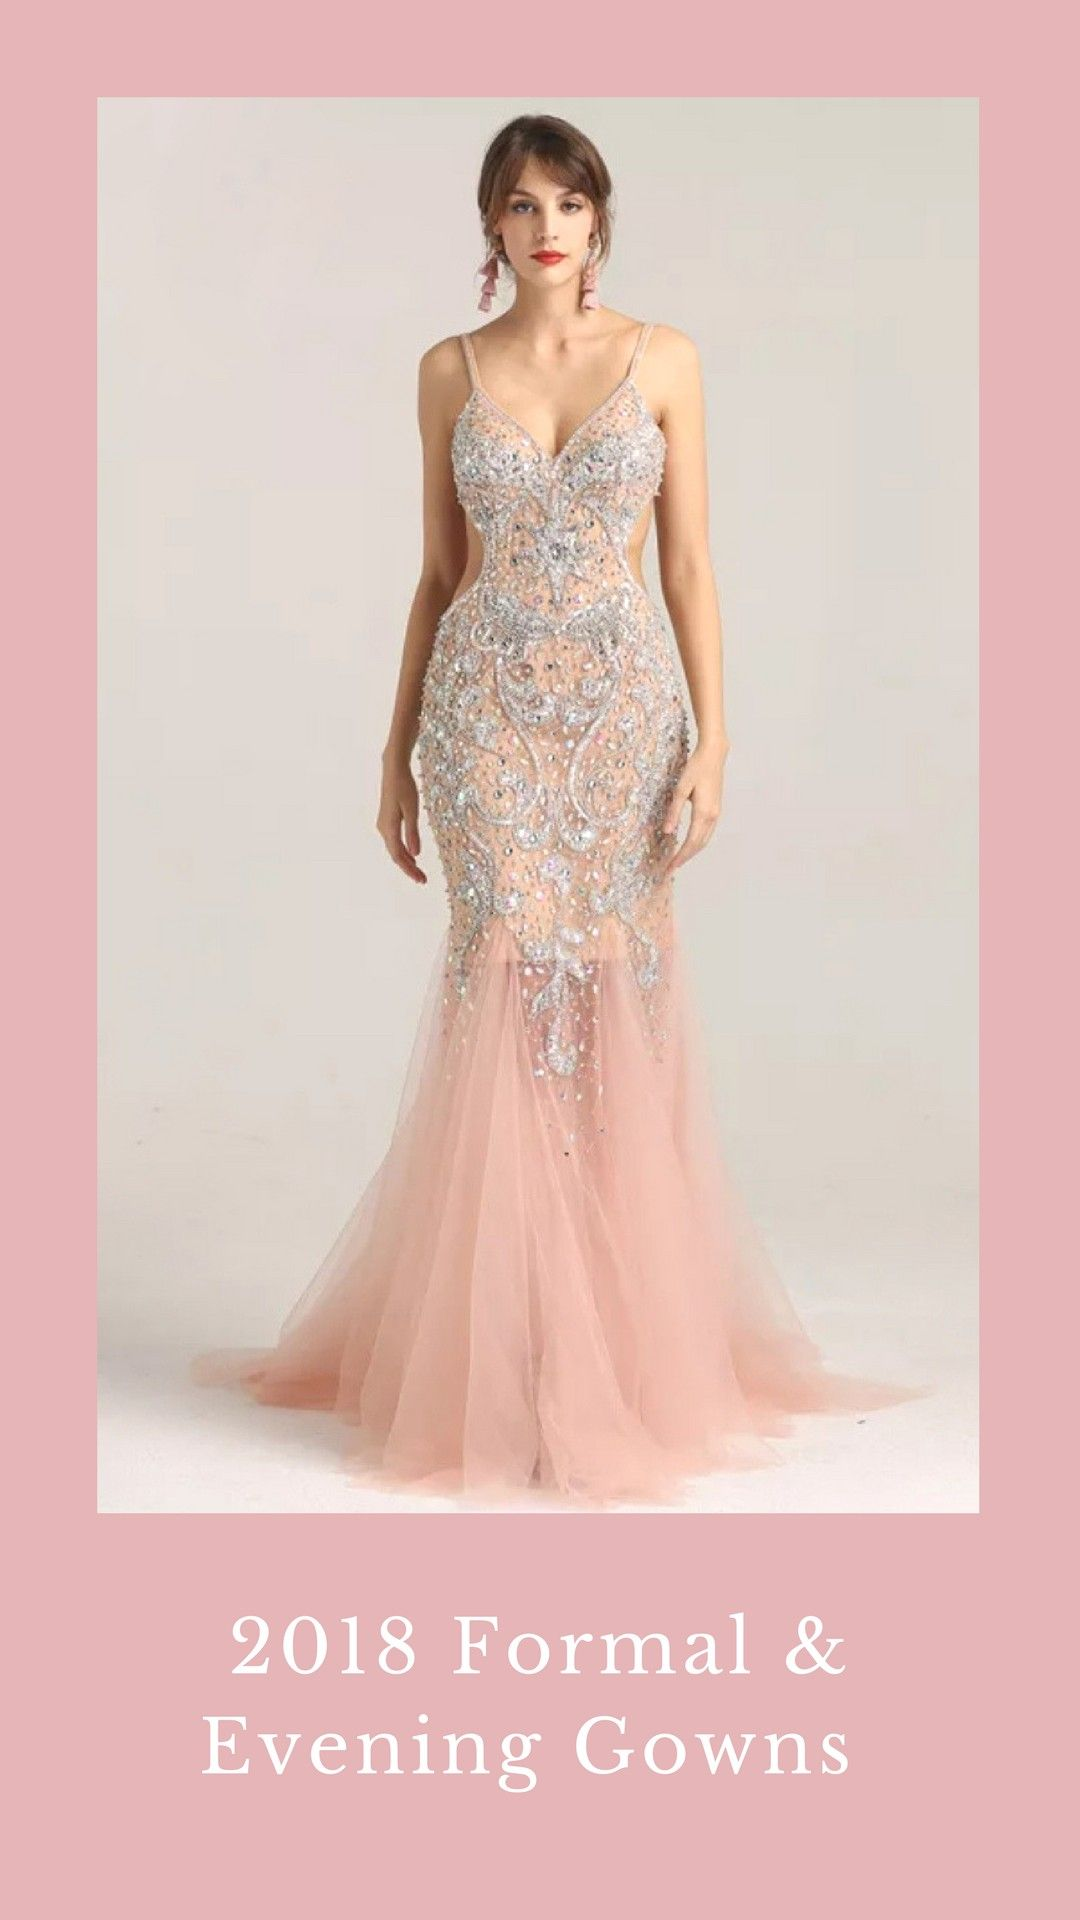 Exclusive At Top Glam Arabella Gown Isd Handmade From Sheer Mesh And Complete In Intricate Bead Work Promdress Dresses Gowns Bridesmaids